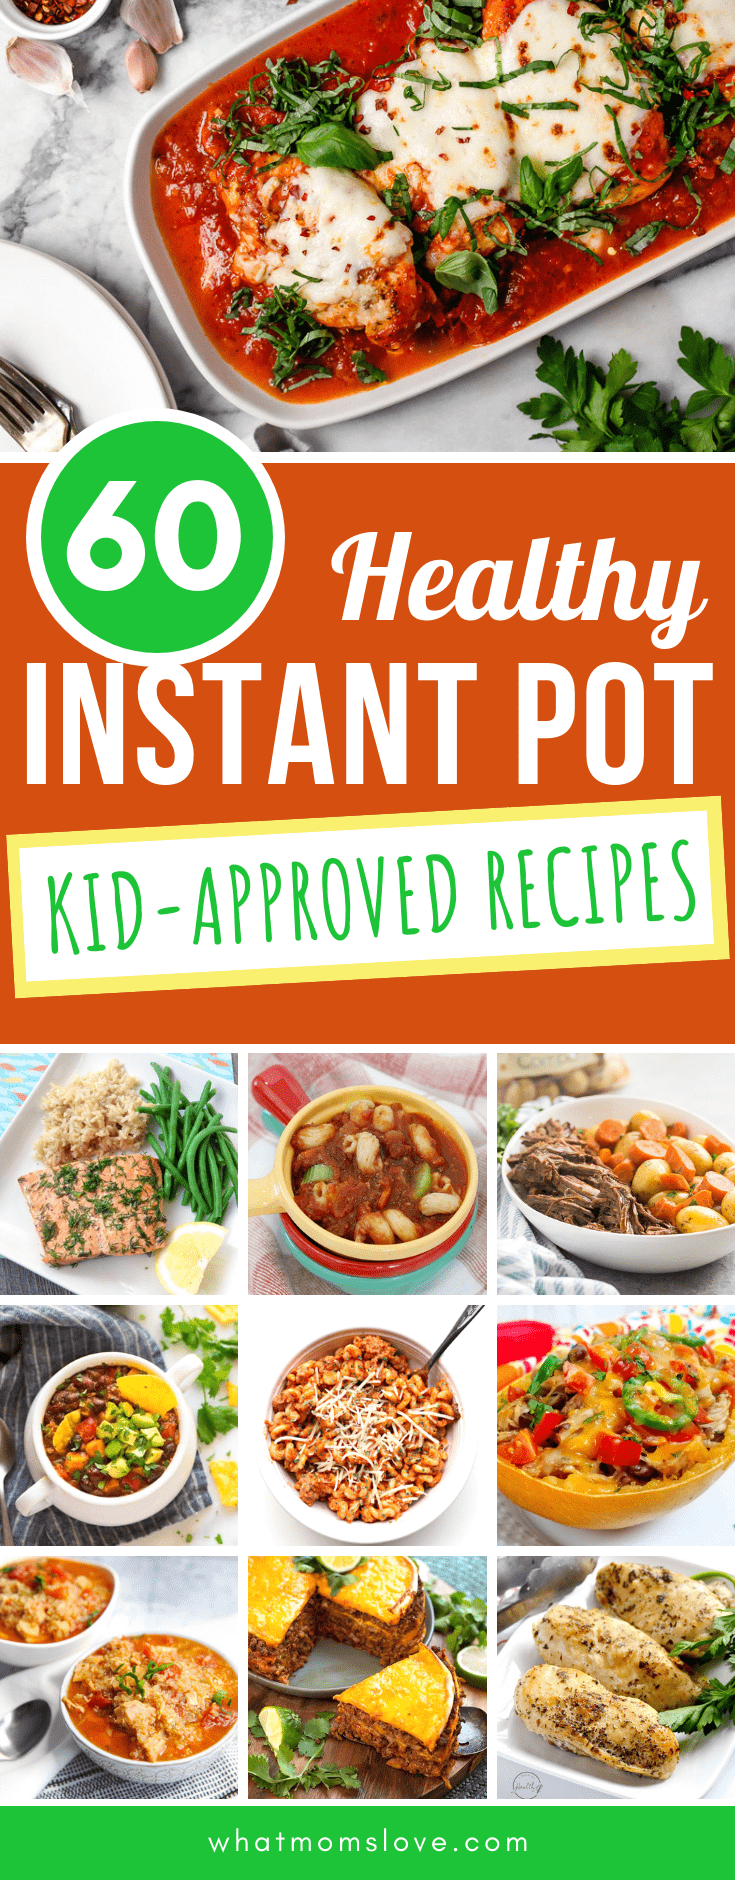 60 Kid Friendly Healthy Instant Pot Recipes Your Whole Family Will Enjoy What Moms Love